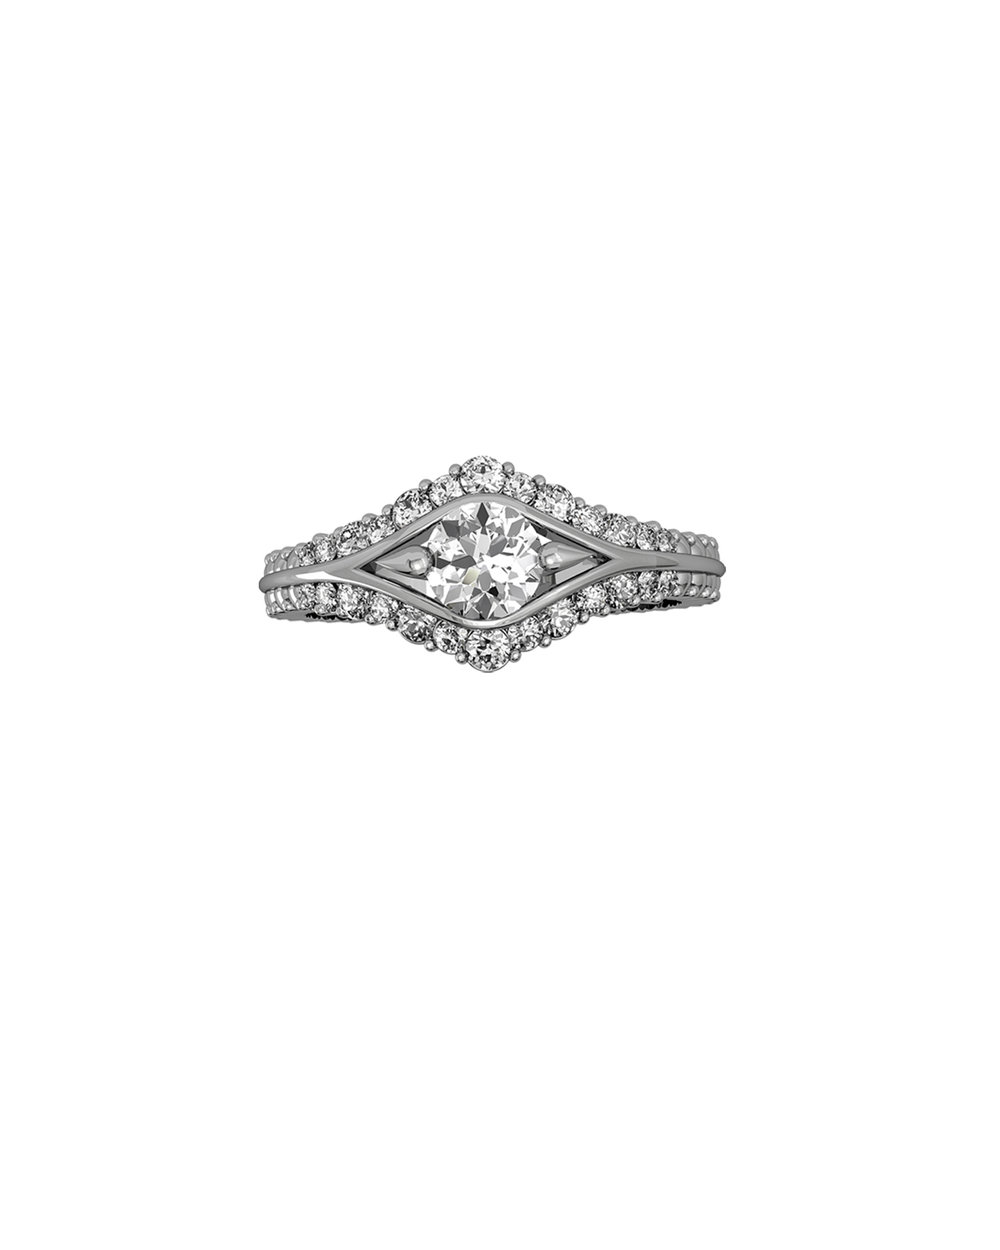 designer diamond bridal jewelry--15.jpg